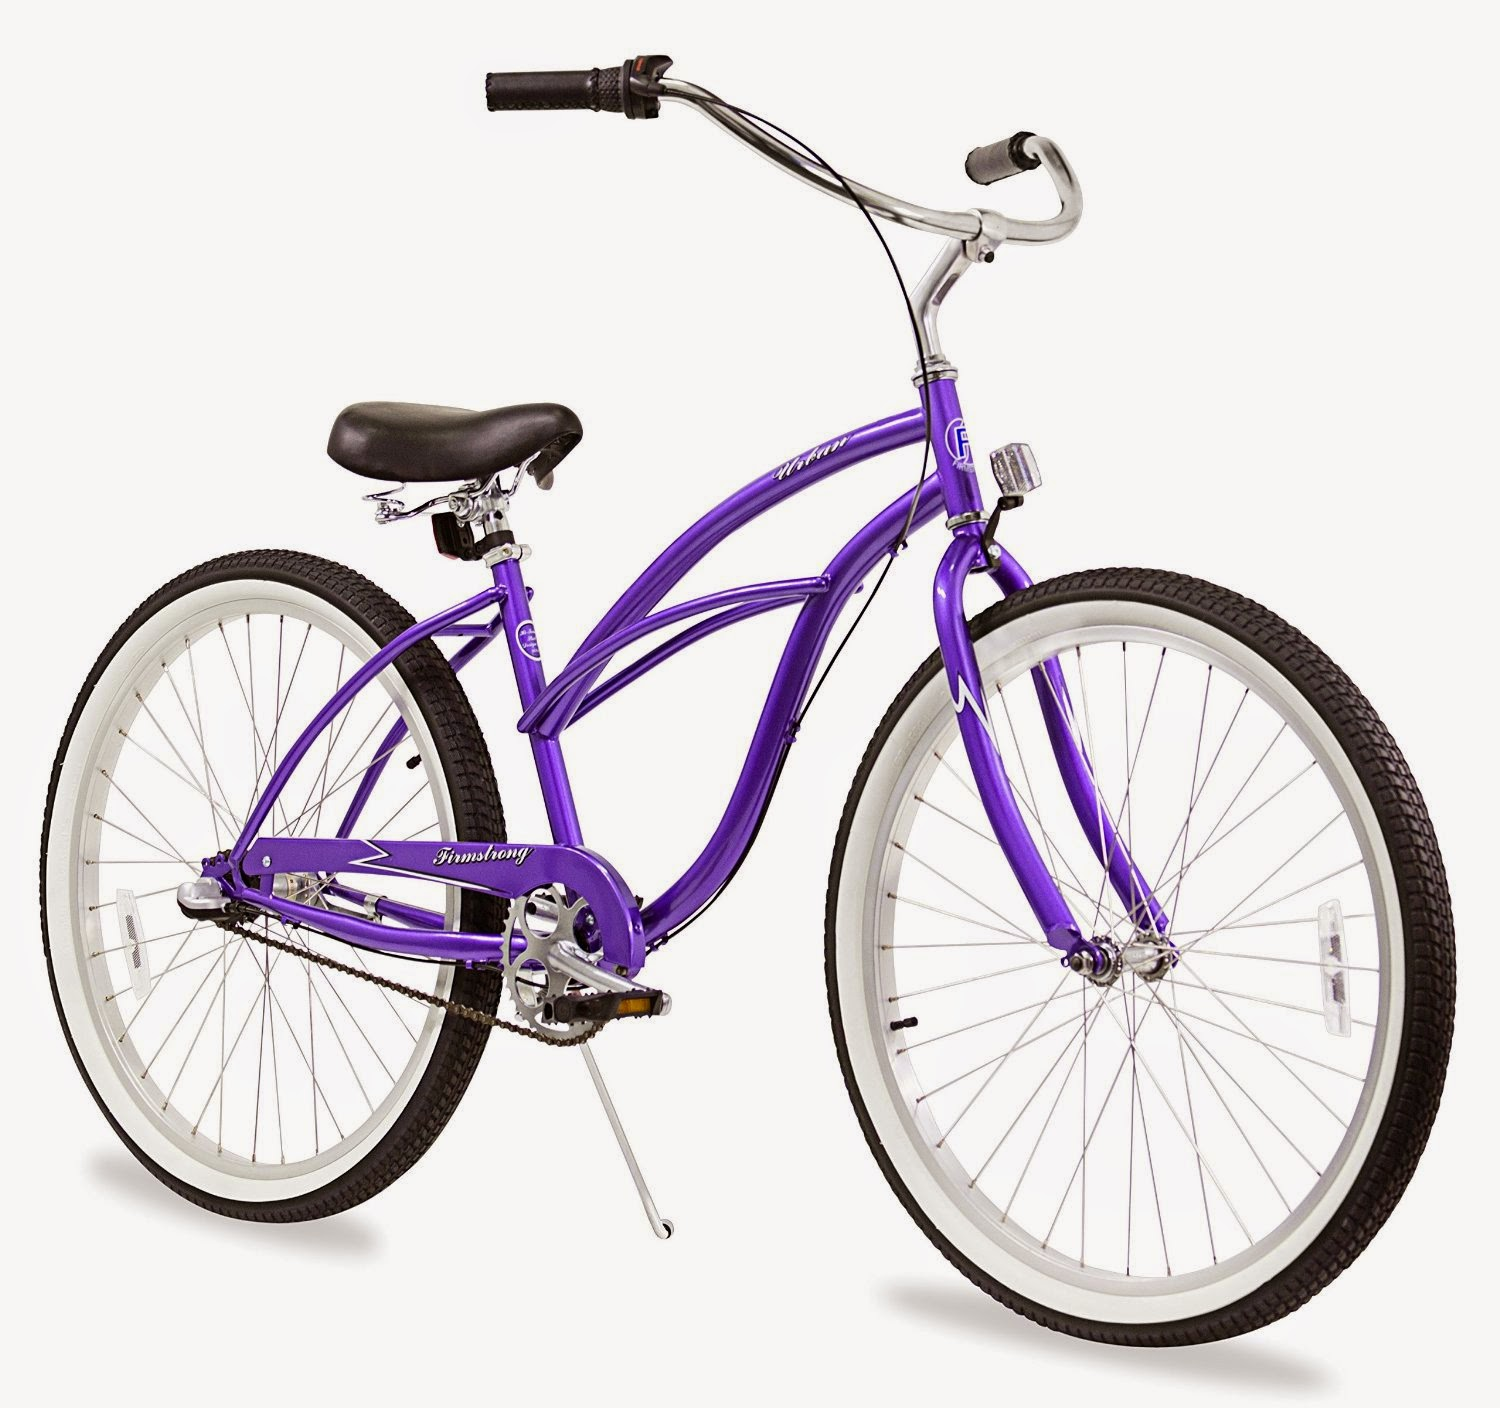 "Firmstrong Urban Lady 3-Speed Women's 26"" Beach Cruiser Bike, purple color, picture, image, review features & specifications, compare with single-speed & 7-speeds"